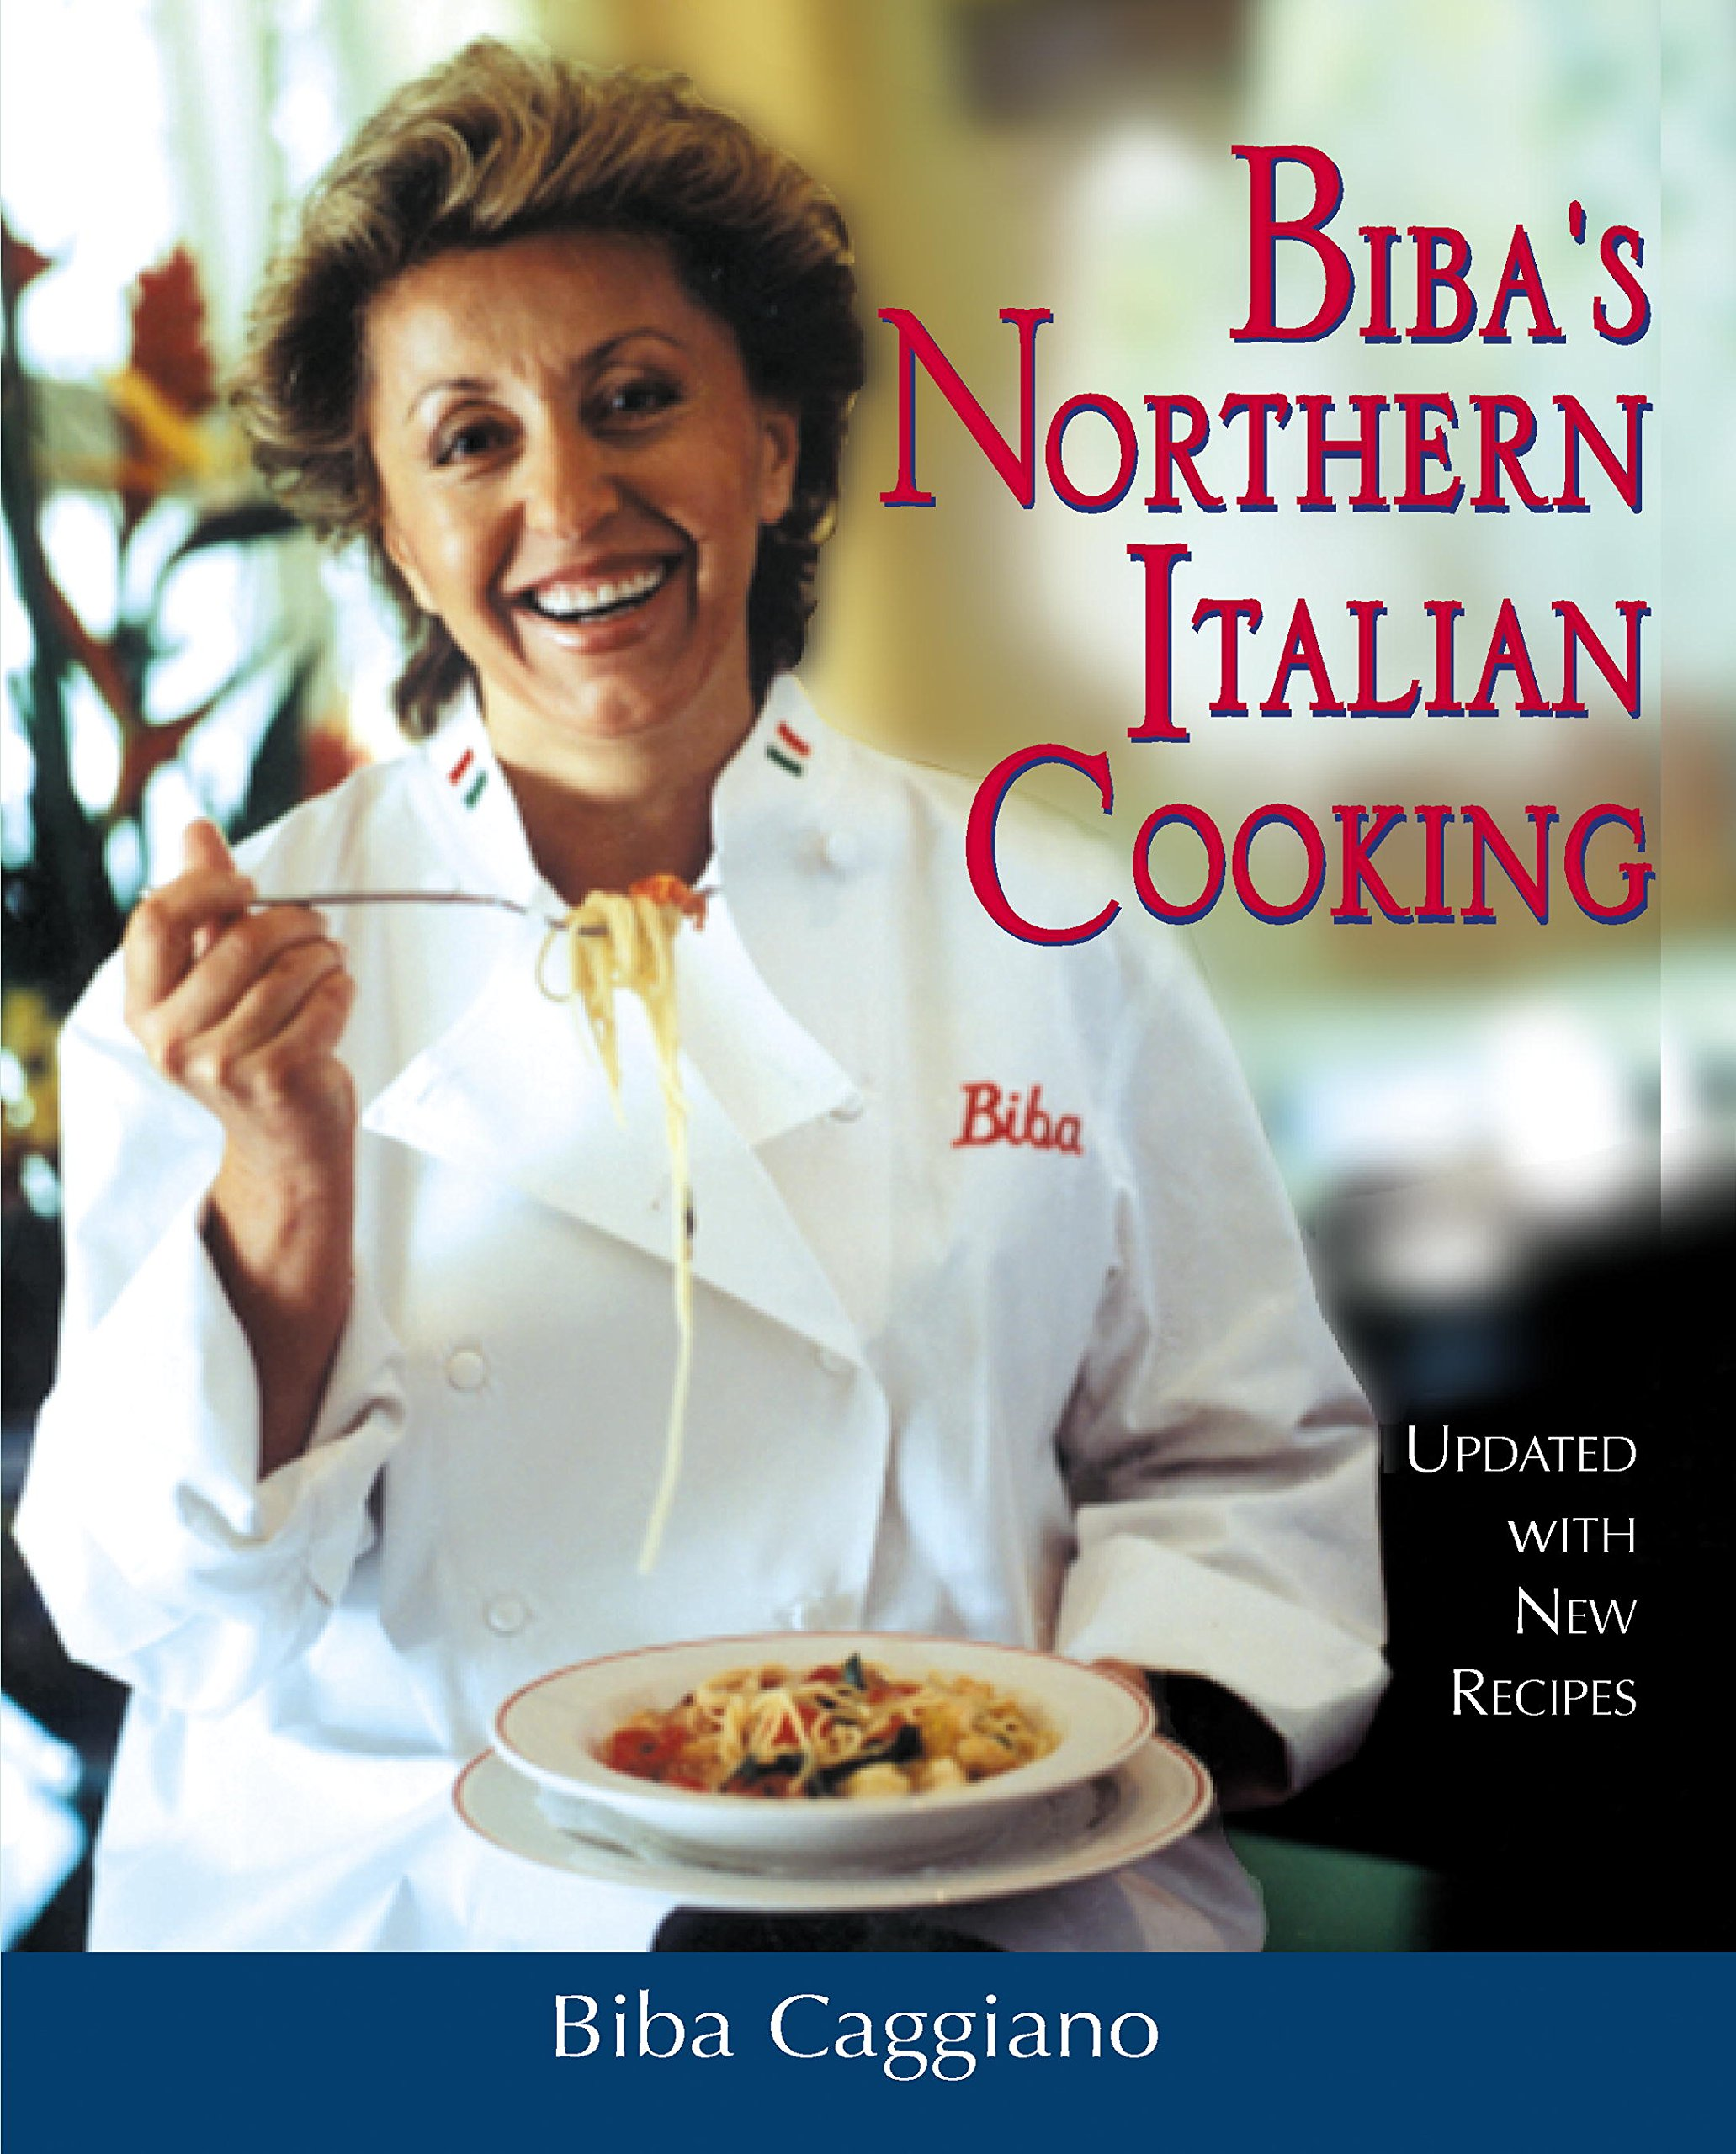 Image OfBiba's Northern Italian Cooking